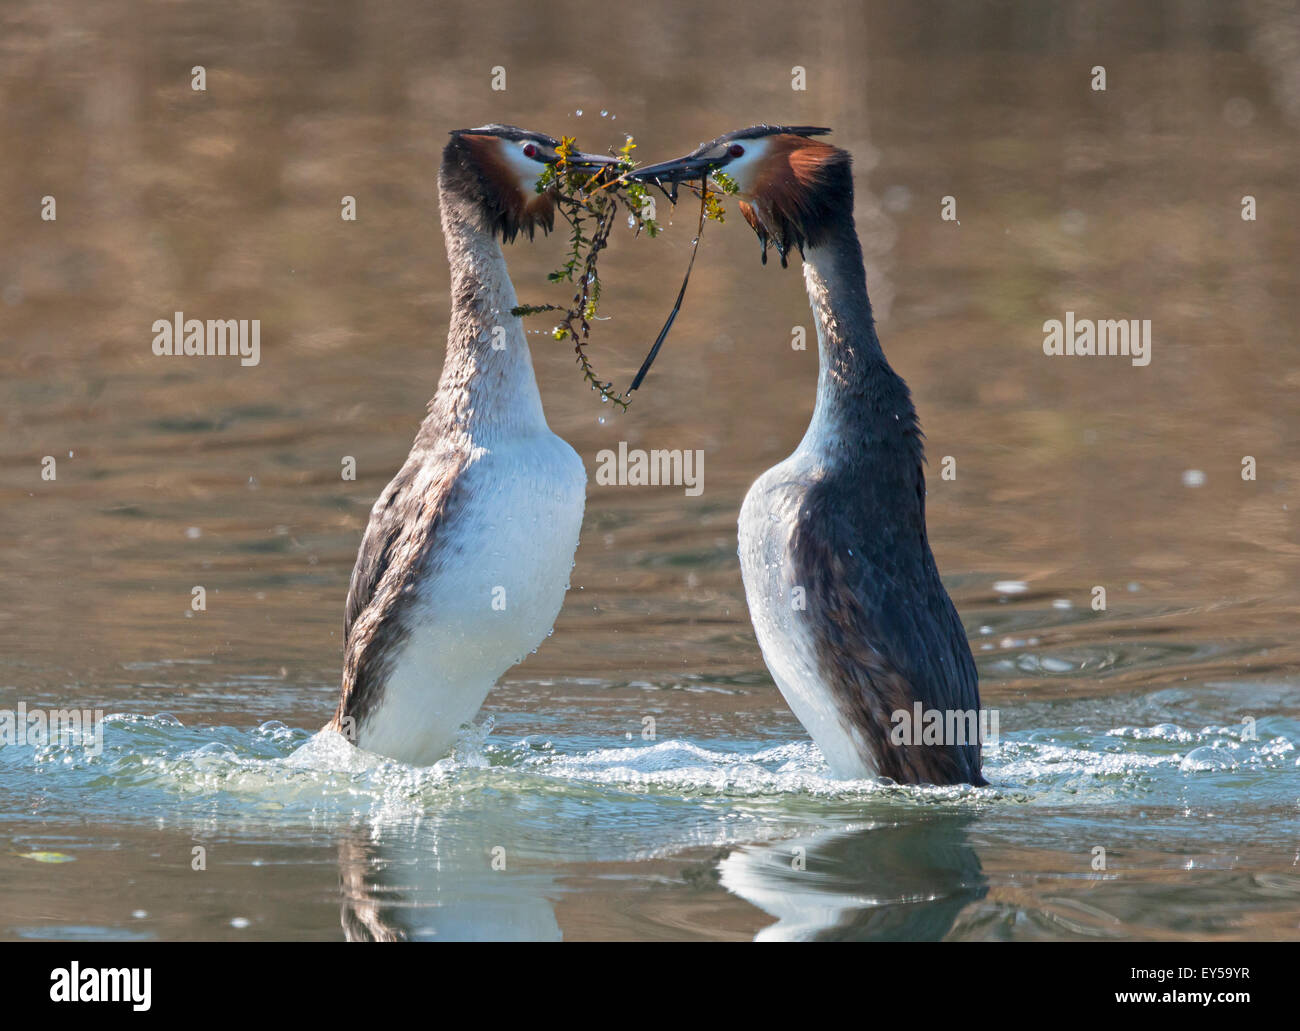 Great Crested Grebes displaying on the water - Switzerland Stock Photo